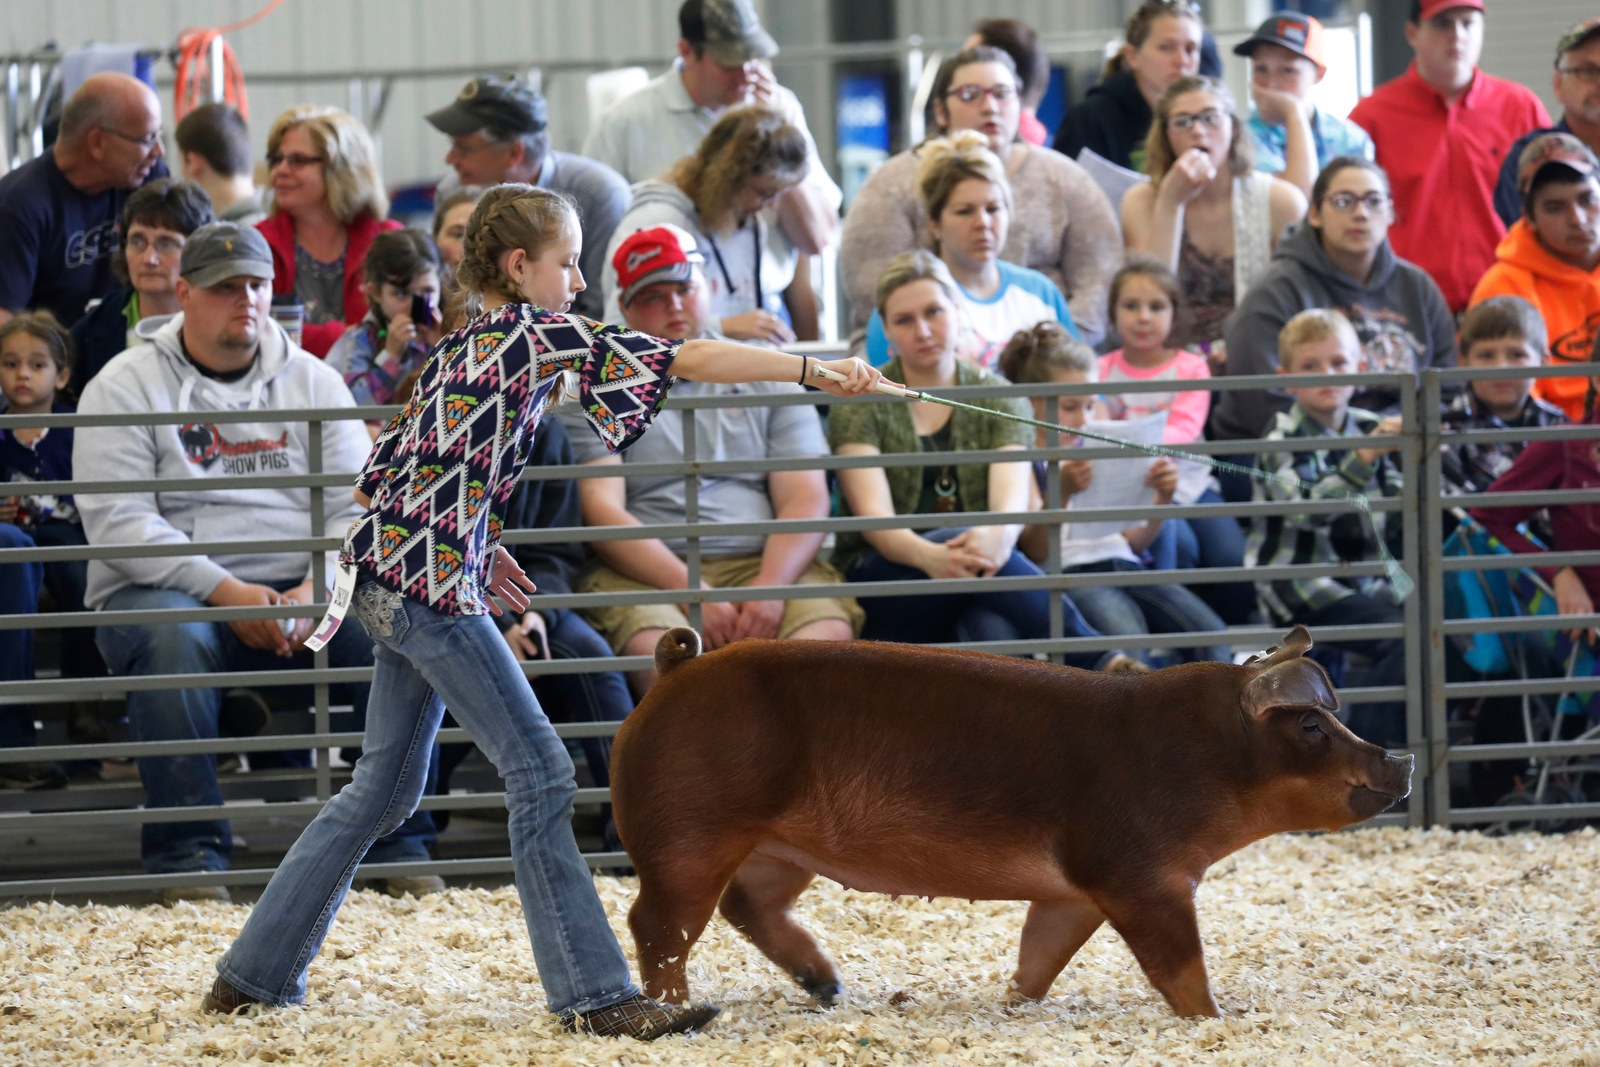 Lilly Underberg, 13, of Springville guides her pig Reba, a purbred duroc, during competition.